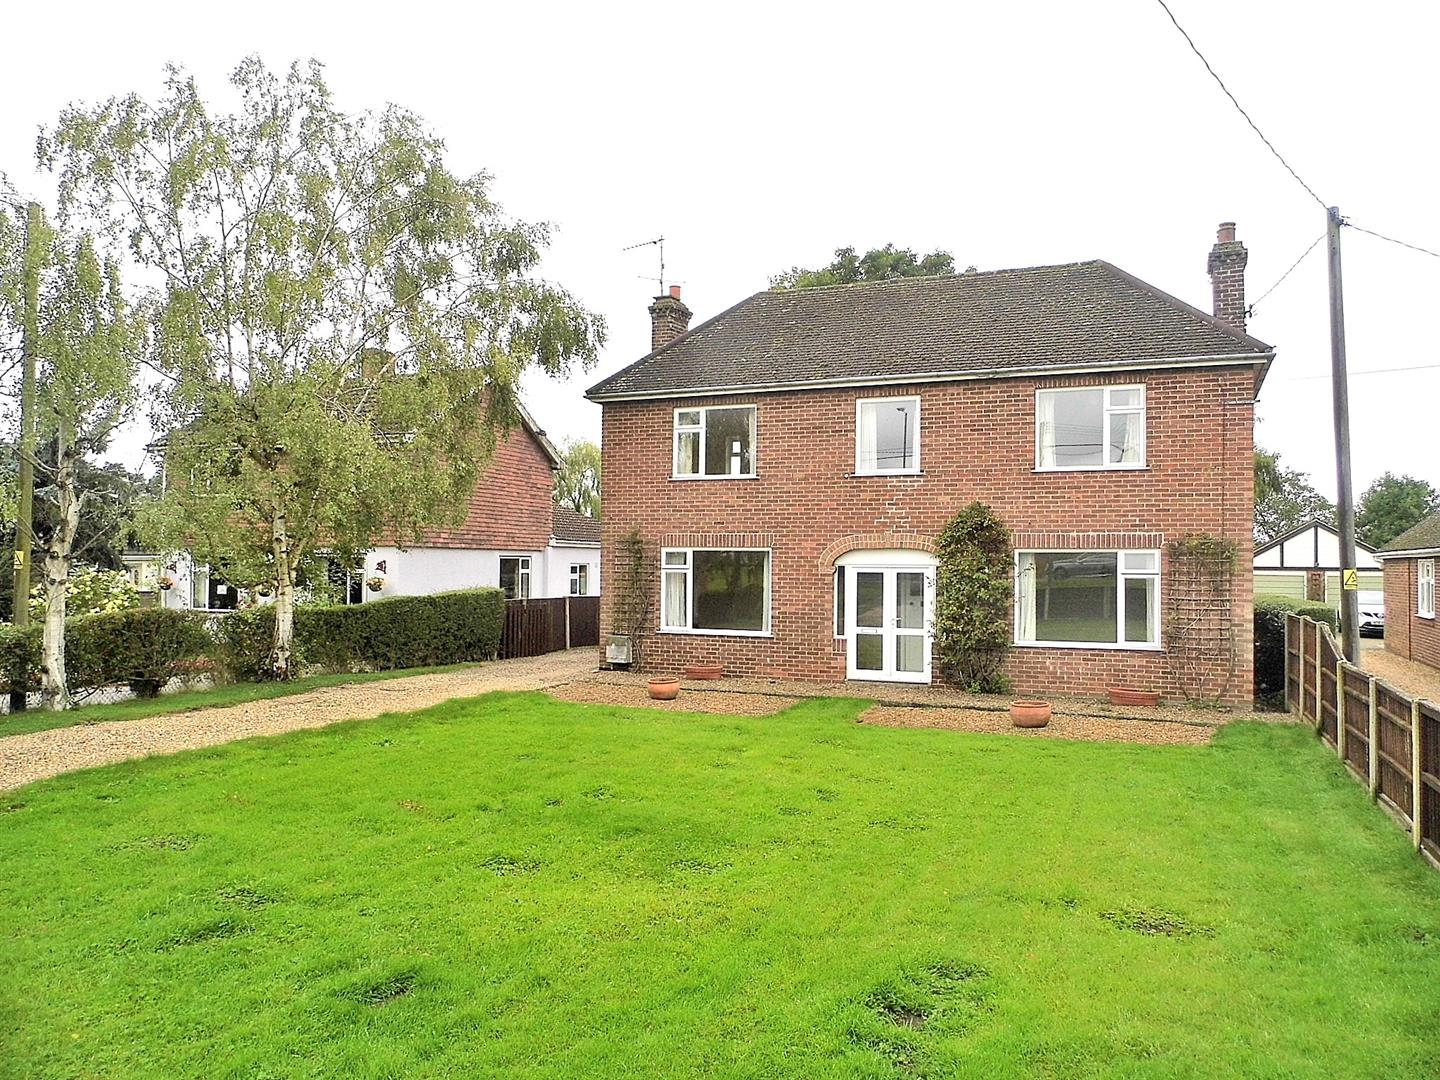 4 bed detached house for sale in King's Lynn, PE33 0ND - Property Image 1